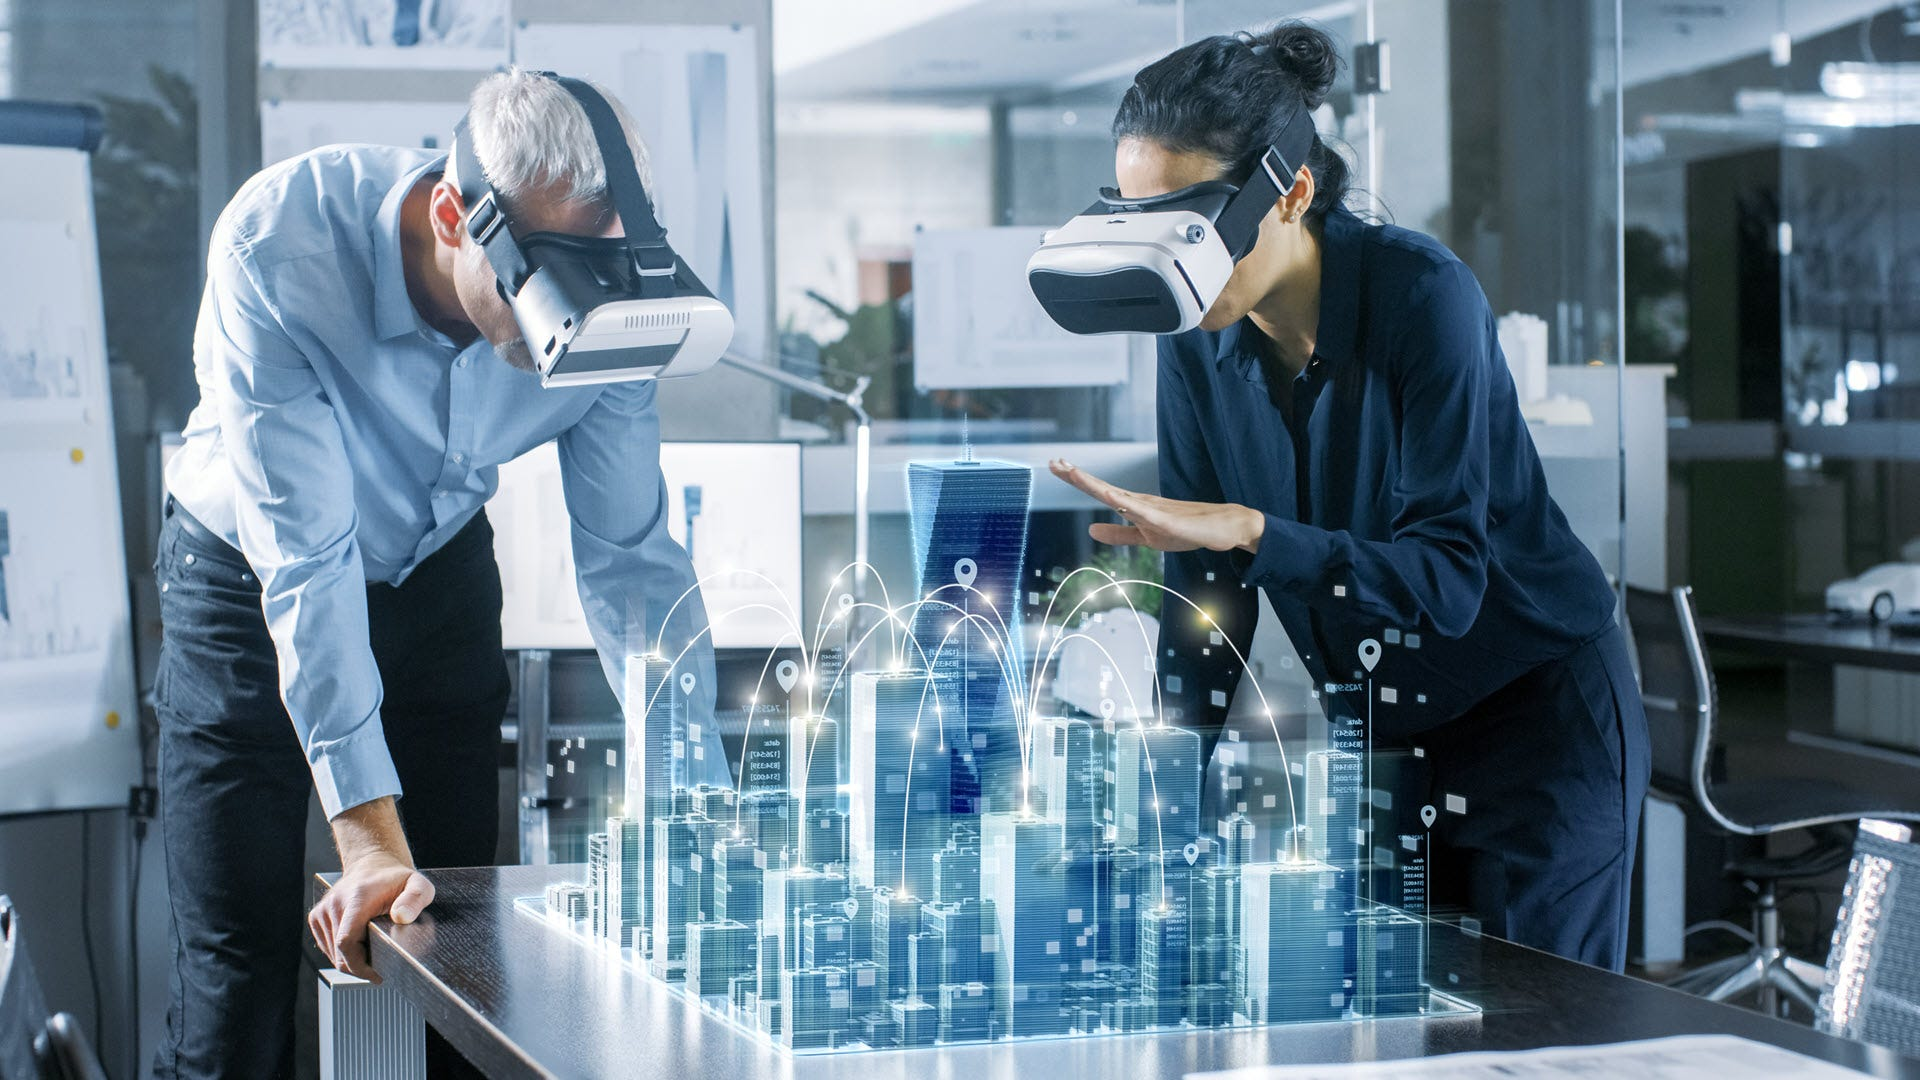 Two people in VR sets staring at an virtual architecture schematic of a city.